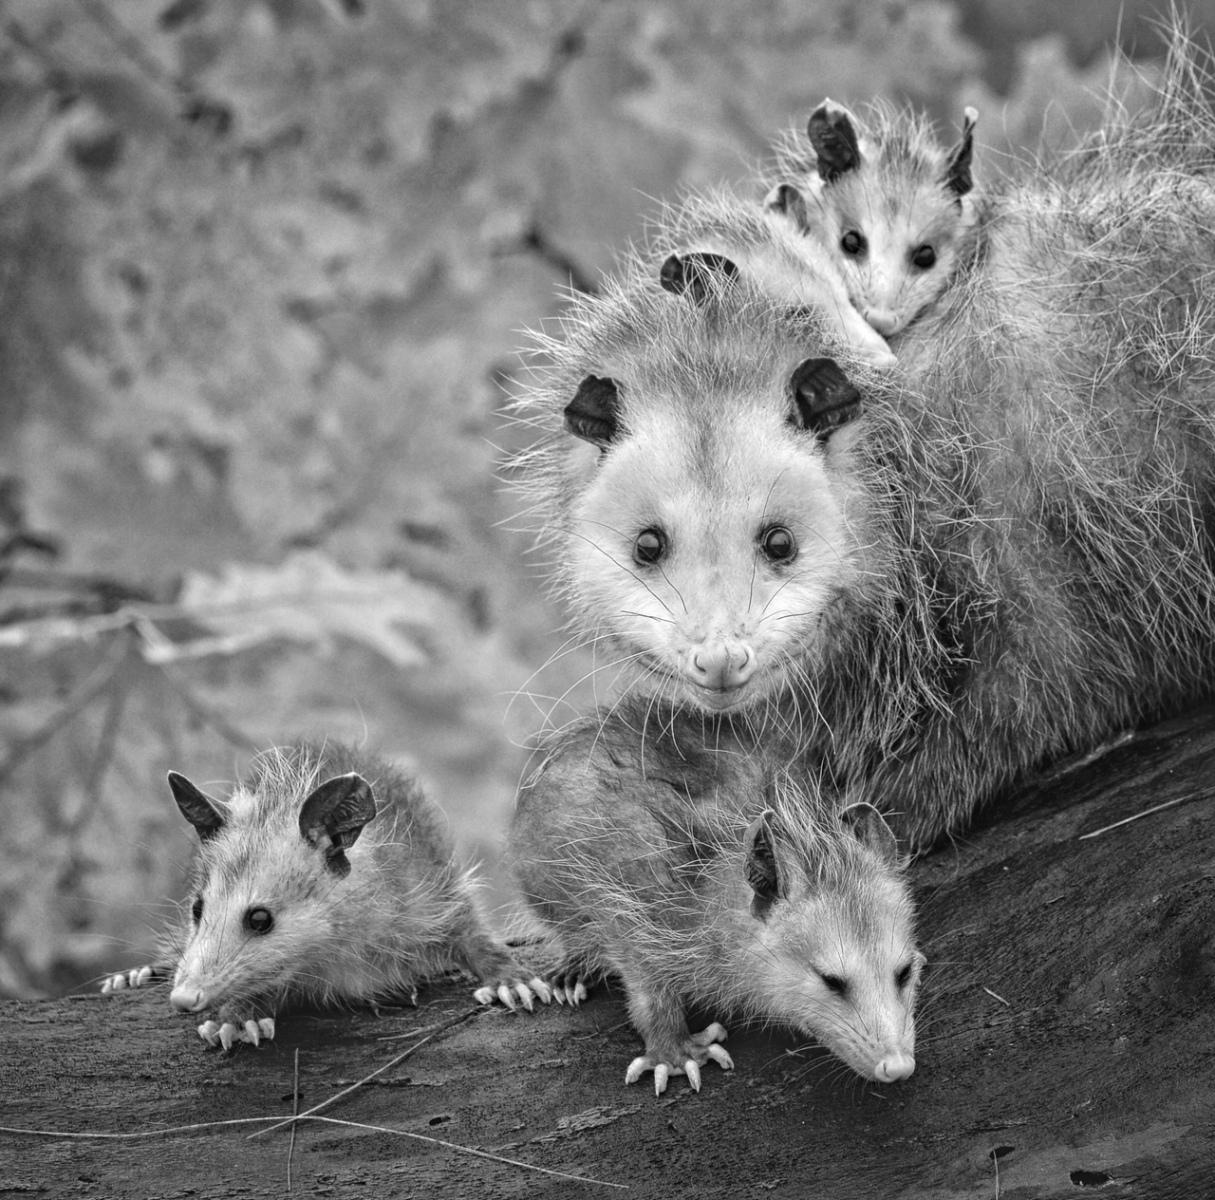 Opossum and Babies - Kathy Wall - NMPC